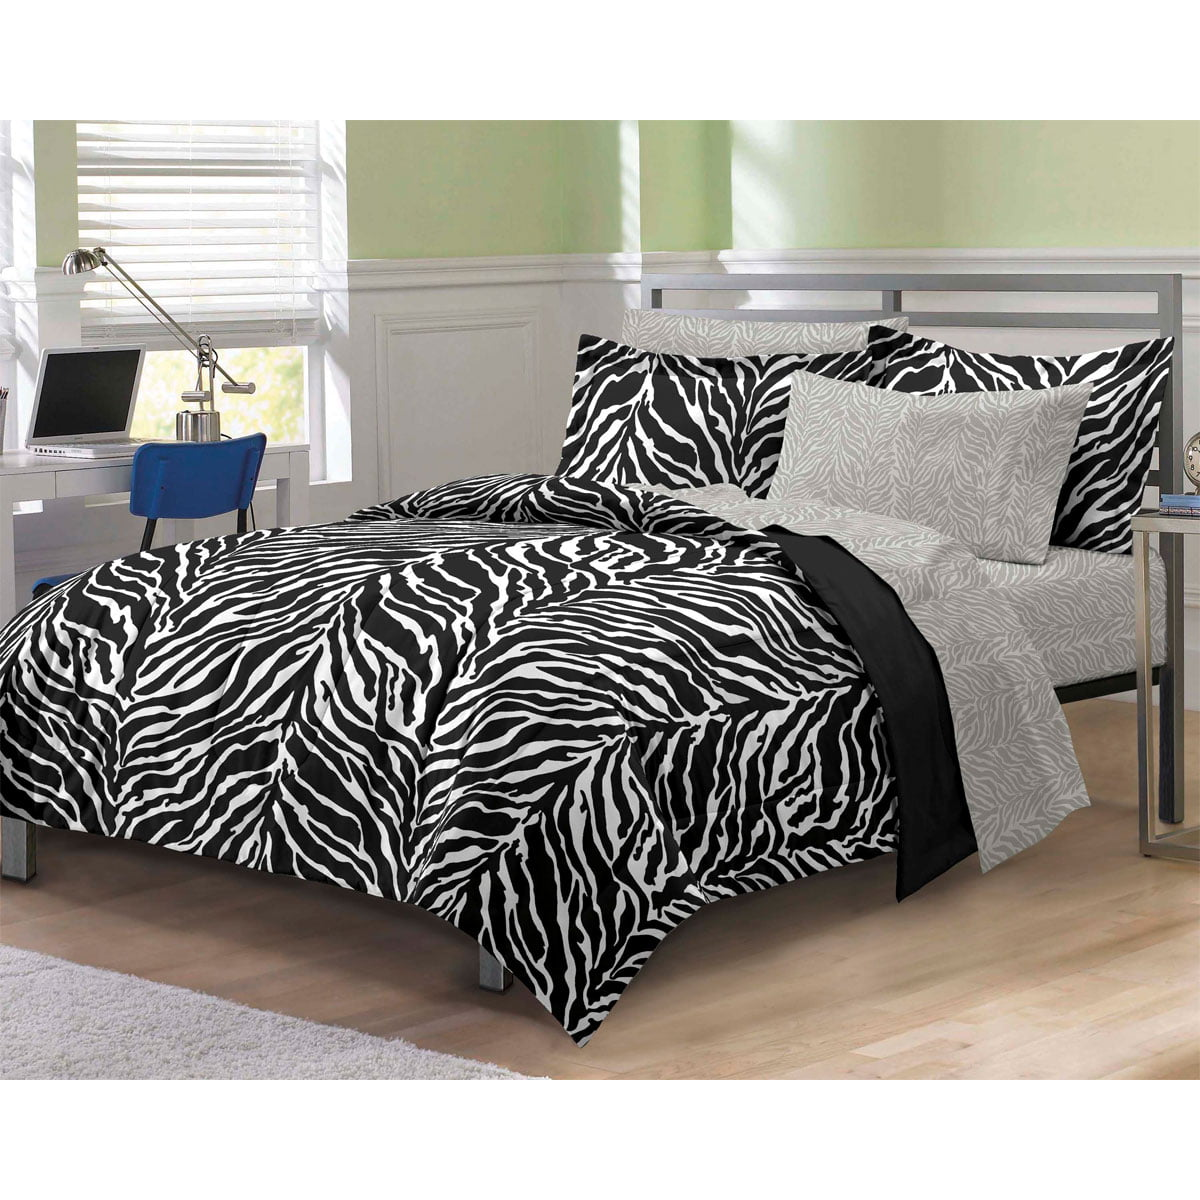 Stunning My Room Zebra Complete Bed in a Bag Bedding Set Black White Walmart